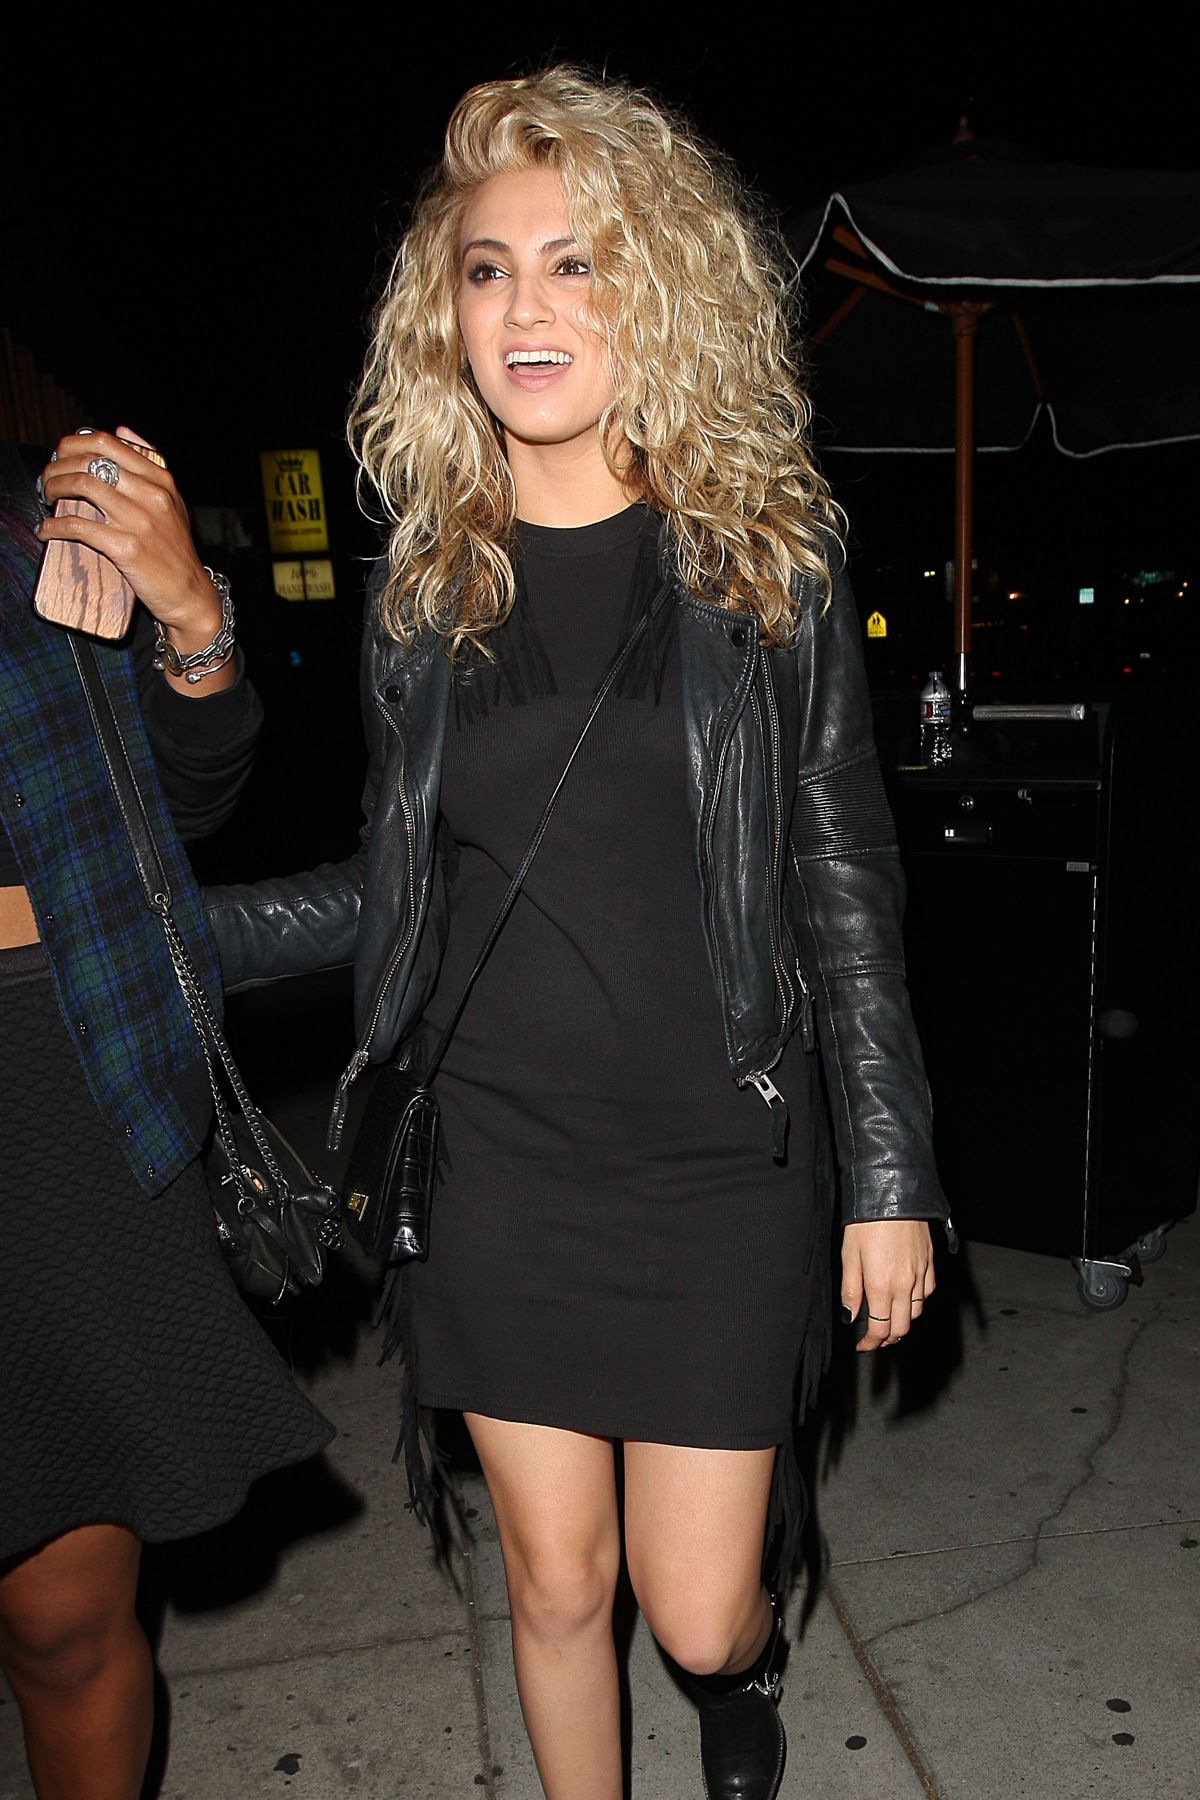 TORI KELLY Leaves The Nice Guy in West Hollywood 06/25/2015